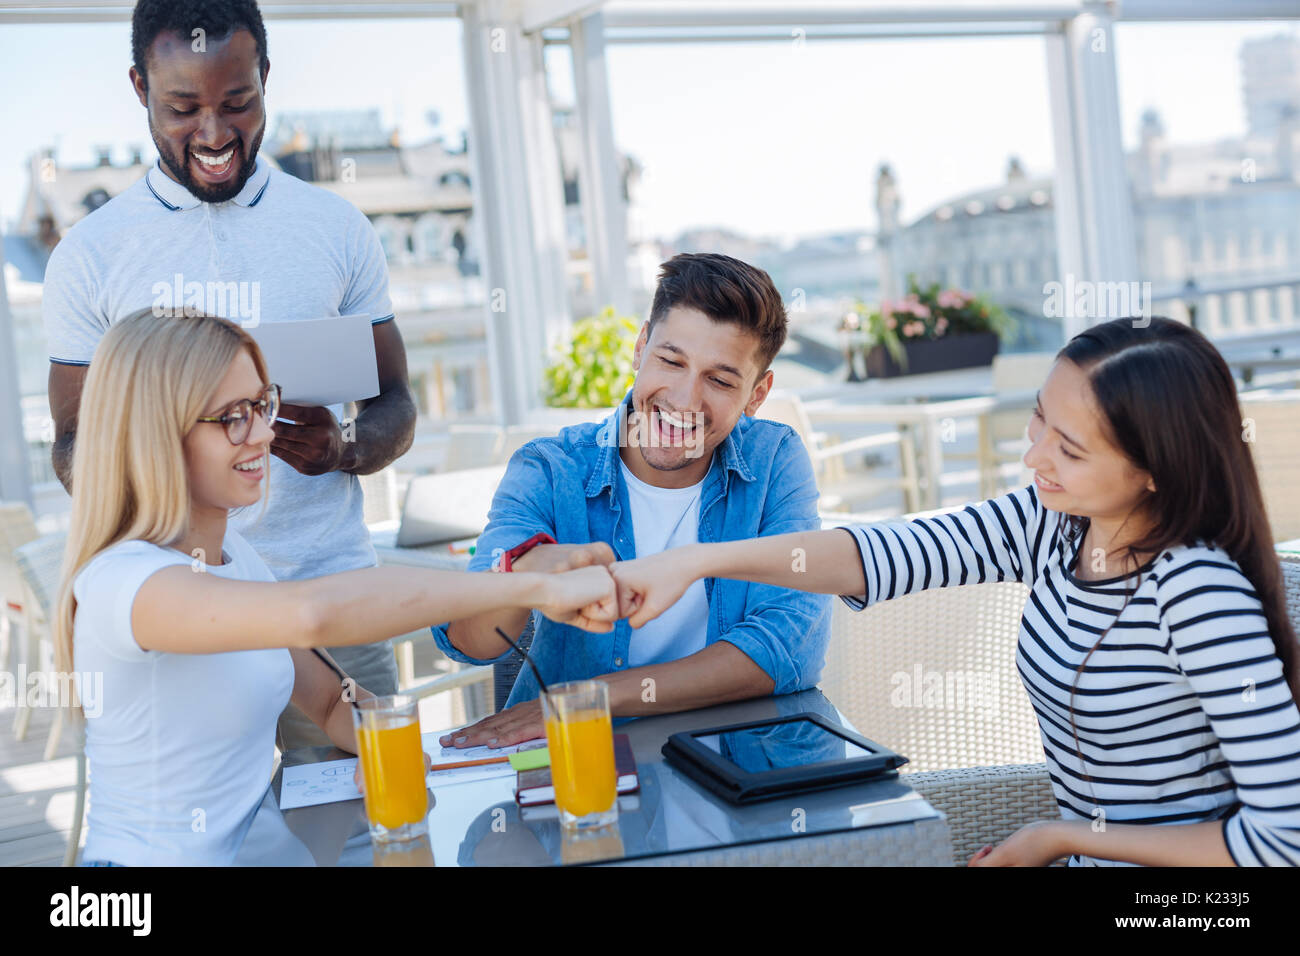 Cheerful company of young people joining fists together - Stock Image